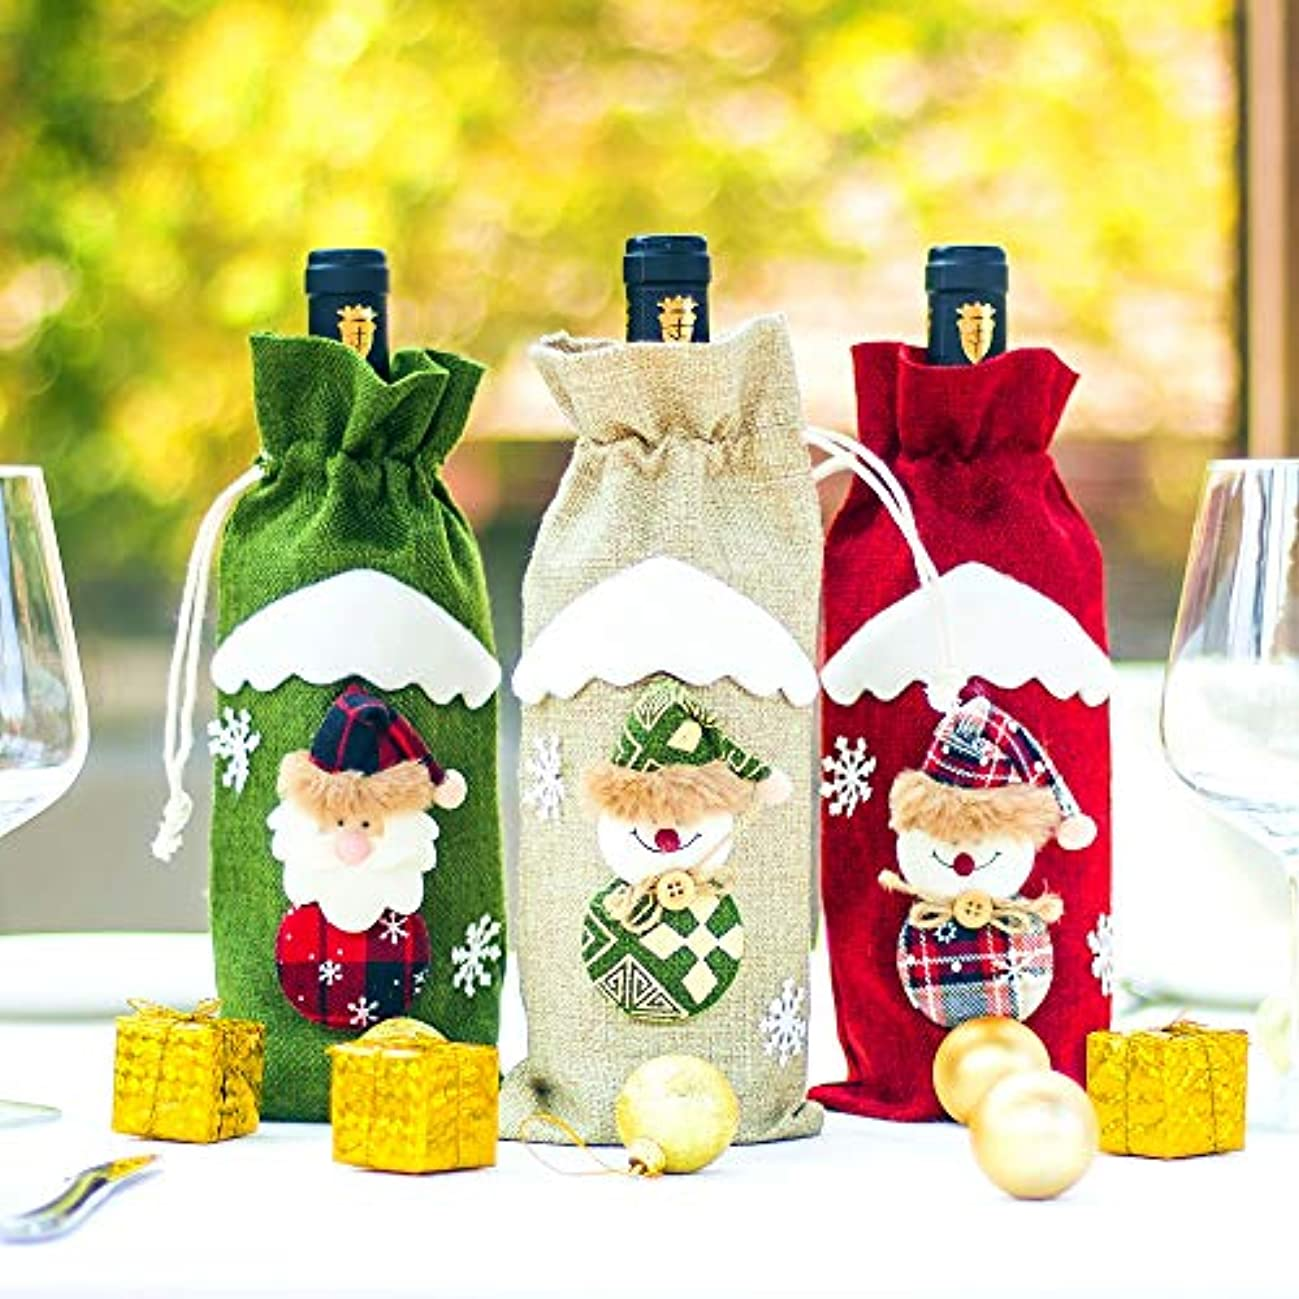 Rainbow Christmas Wine Bottle Covers Bags for Xmas Home Party Decorations Set of 3PCS 3D Design Handmade Gifts